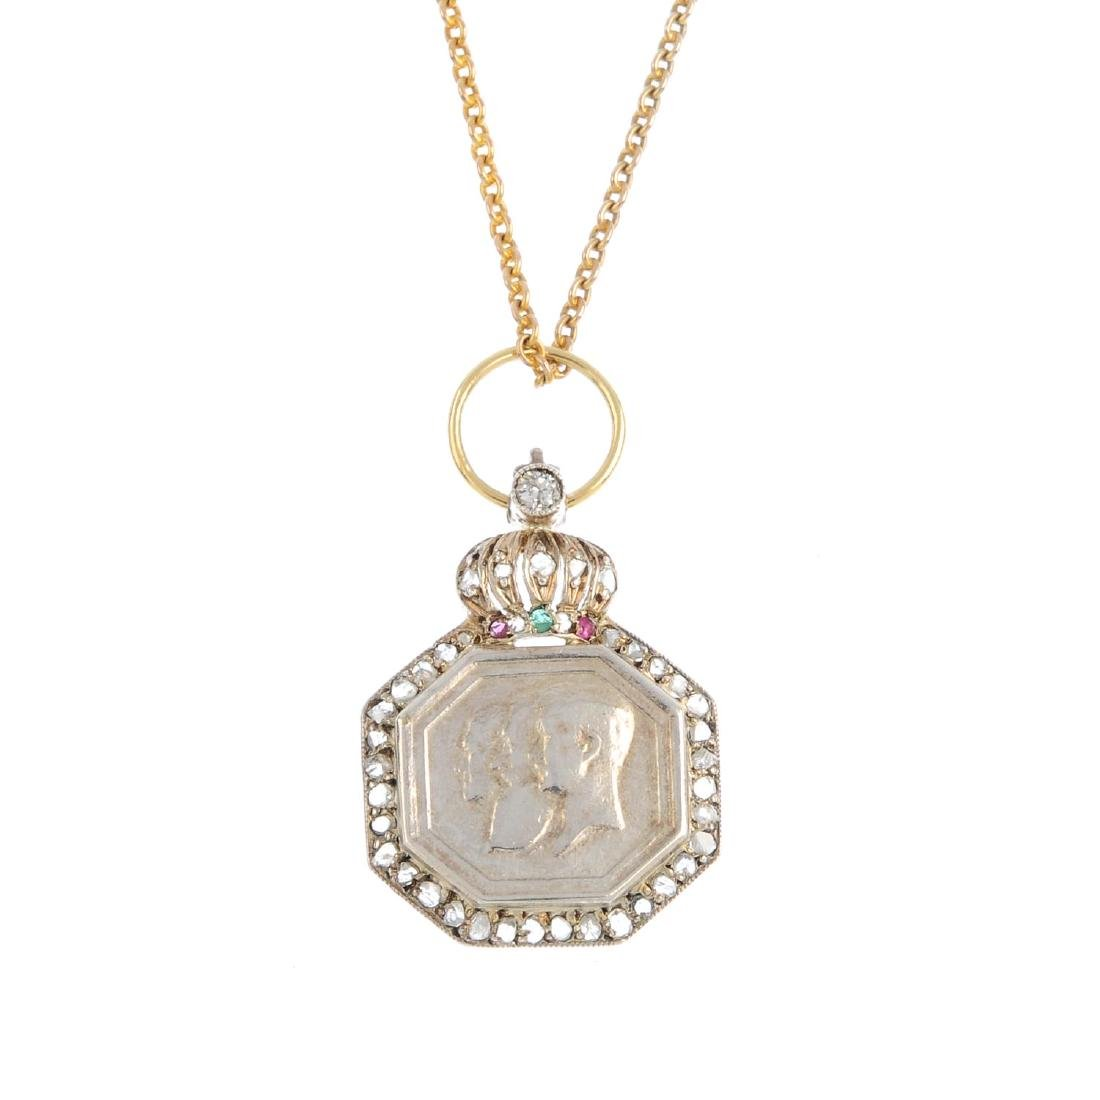 A gem-set miniature medal pendant. Depicting the